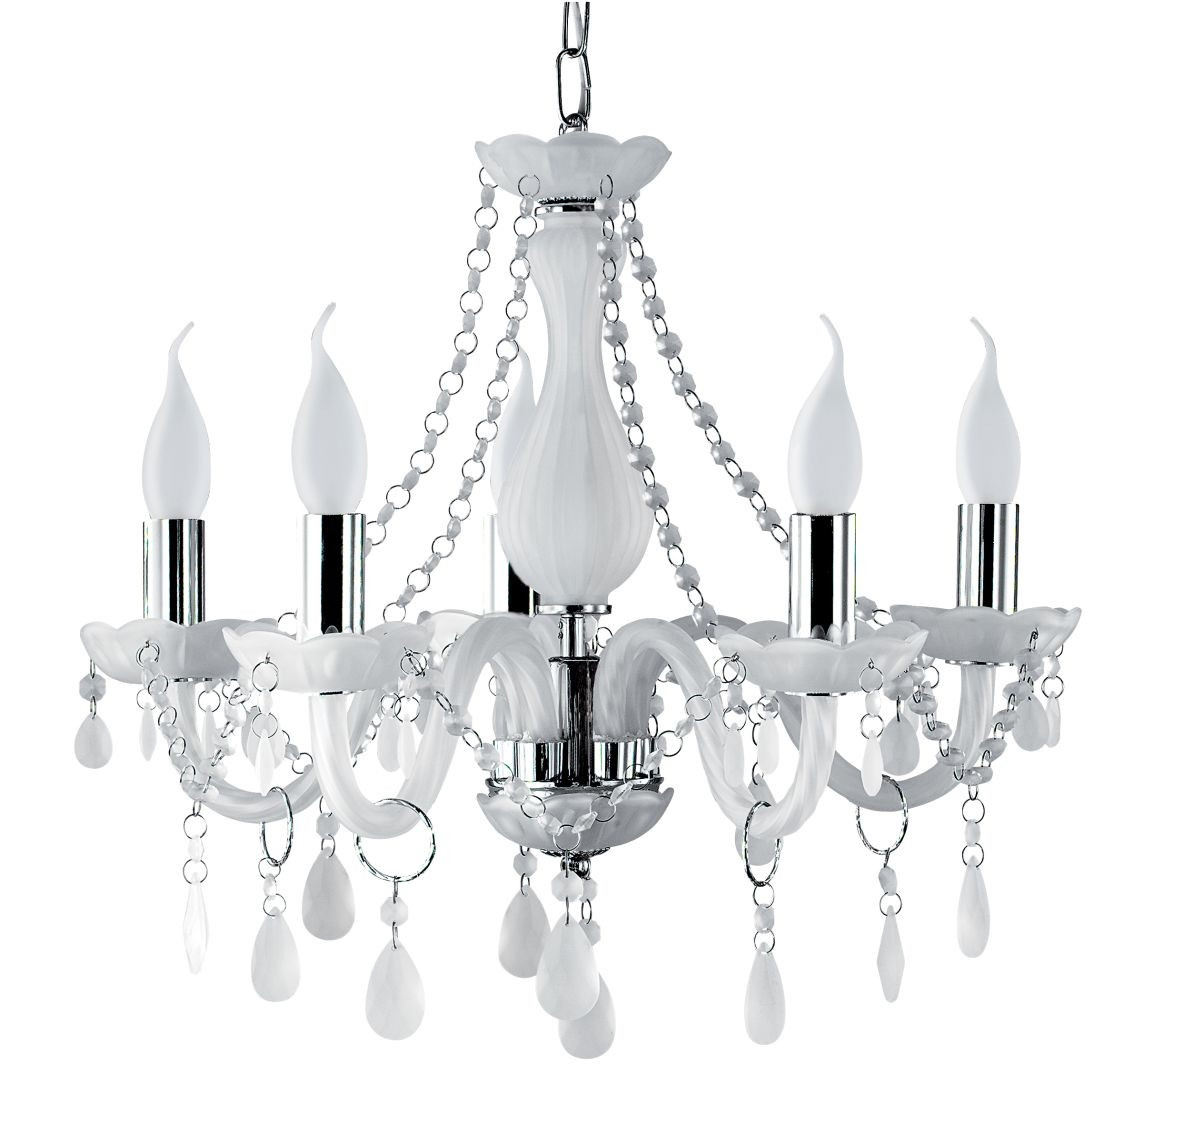 Decorative Chandeliers For Bedroom With White And Crystal For White Chandeliers (Image 9 of 15)